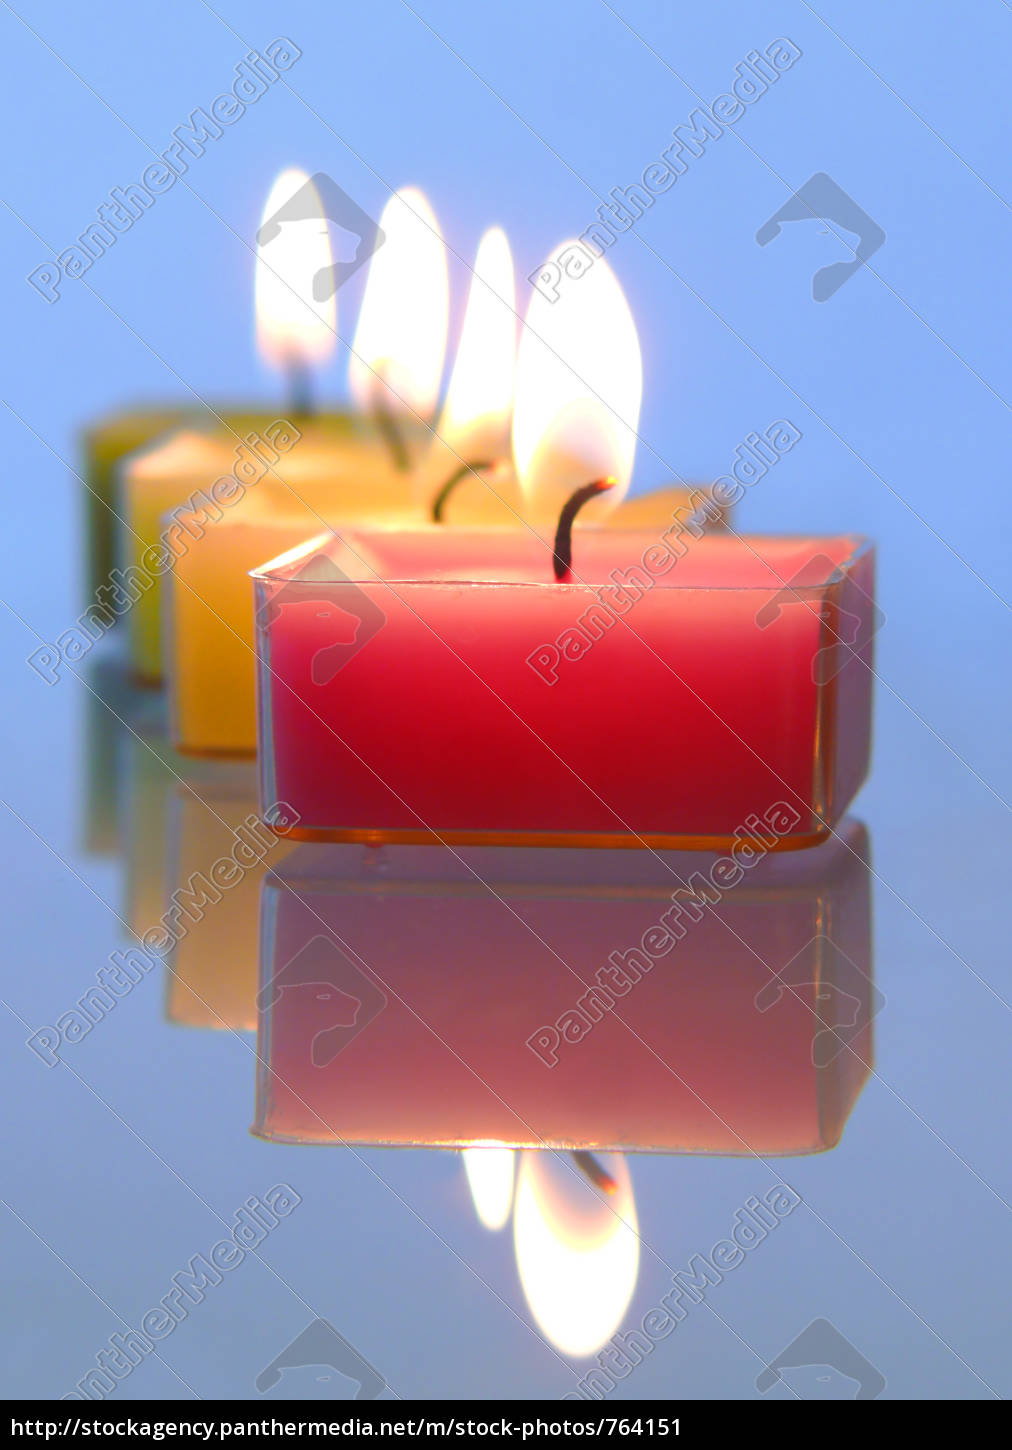 burning, candles - 764151